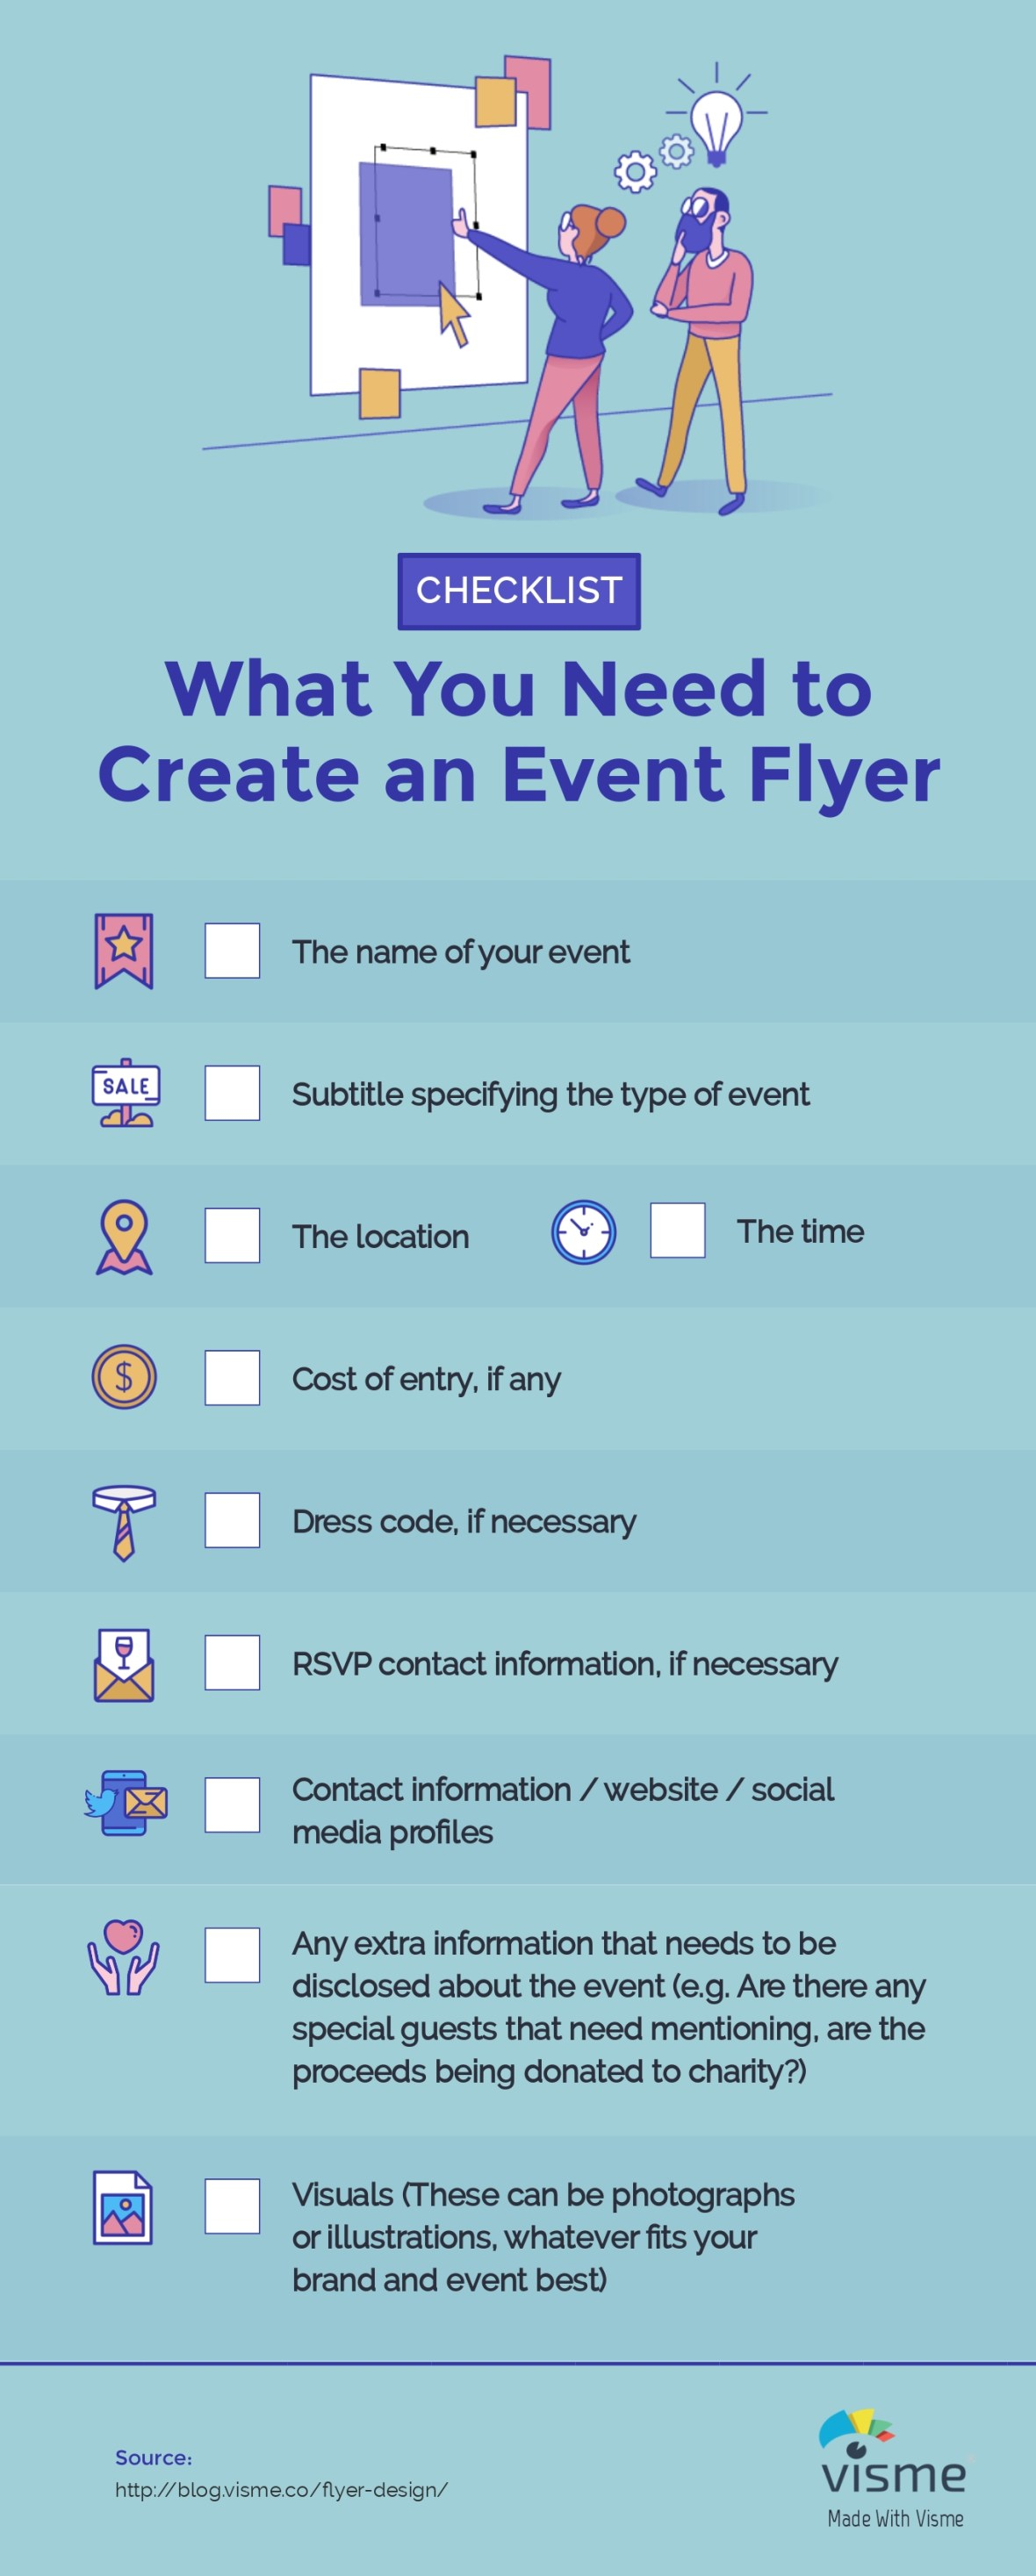 There are plenty of beautiful flyers you'll see on Google or Pinterest. And when you find an inspiration, make sure to tick off every item on this infographic checklist Visme created so you can make a flyer like a professional designer created it.